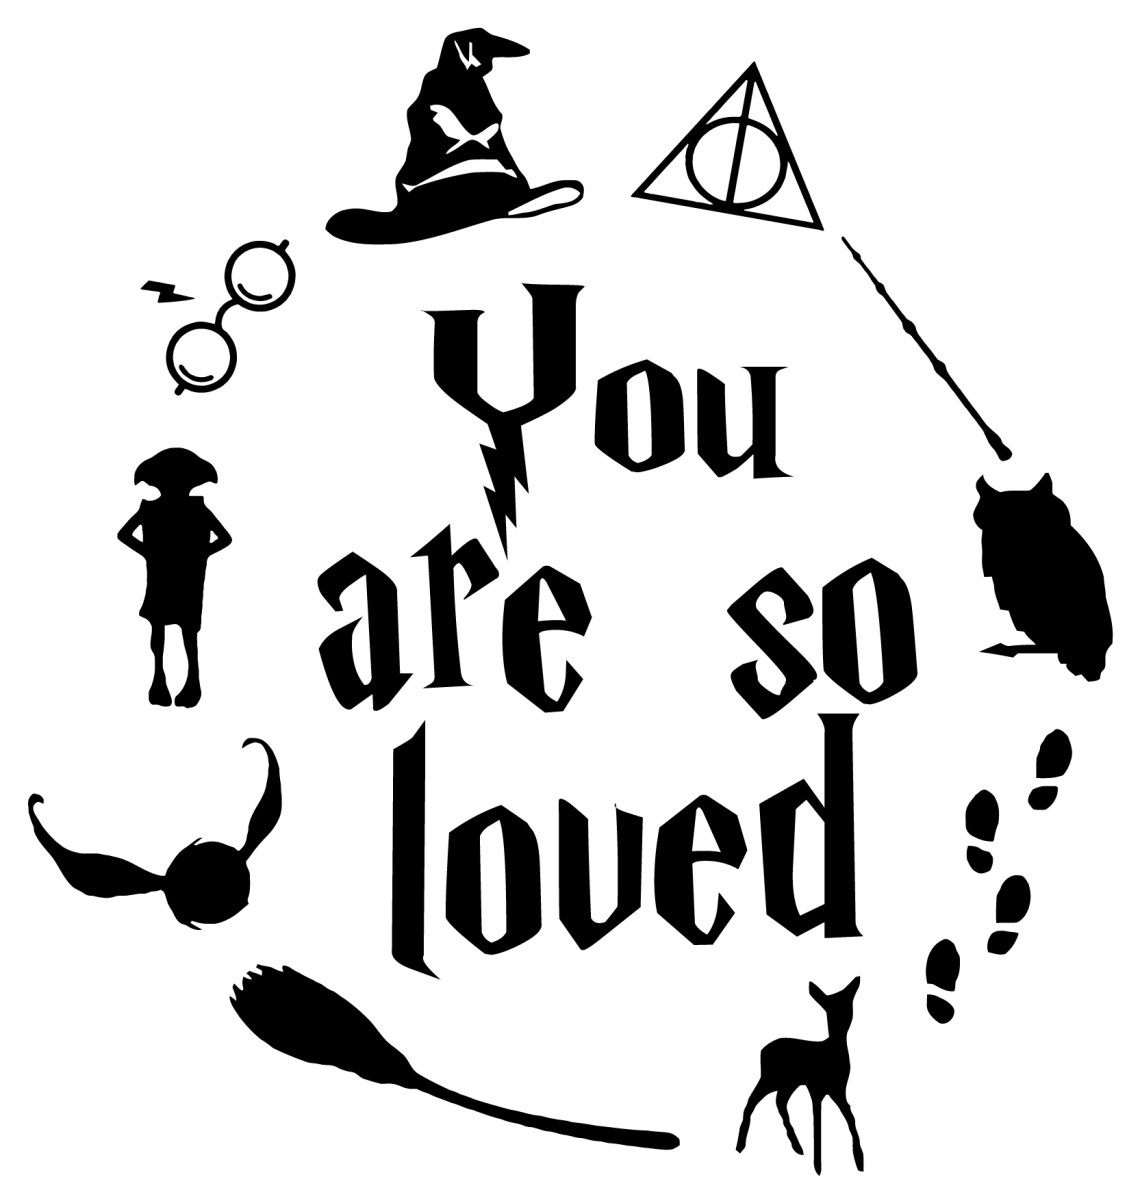 Download harry potter quotes clipart 10 free Cliparts   Download ...